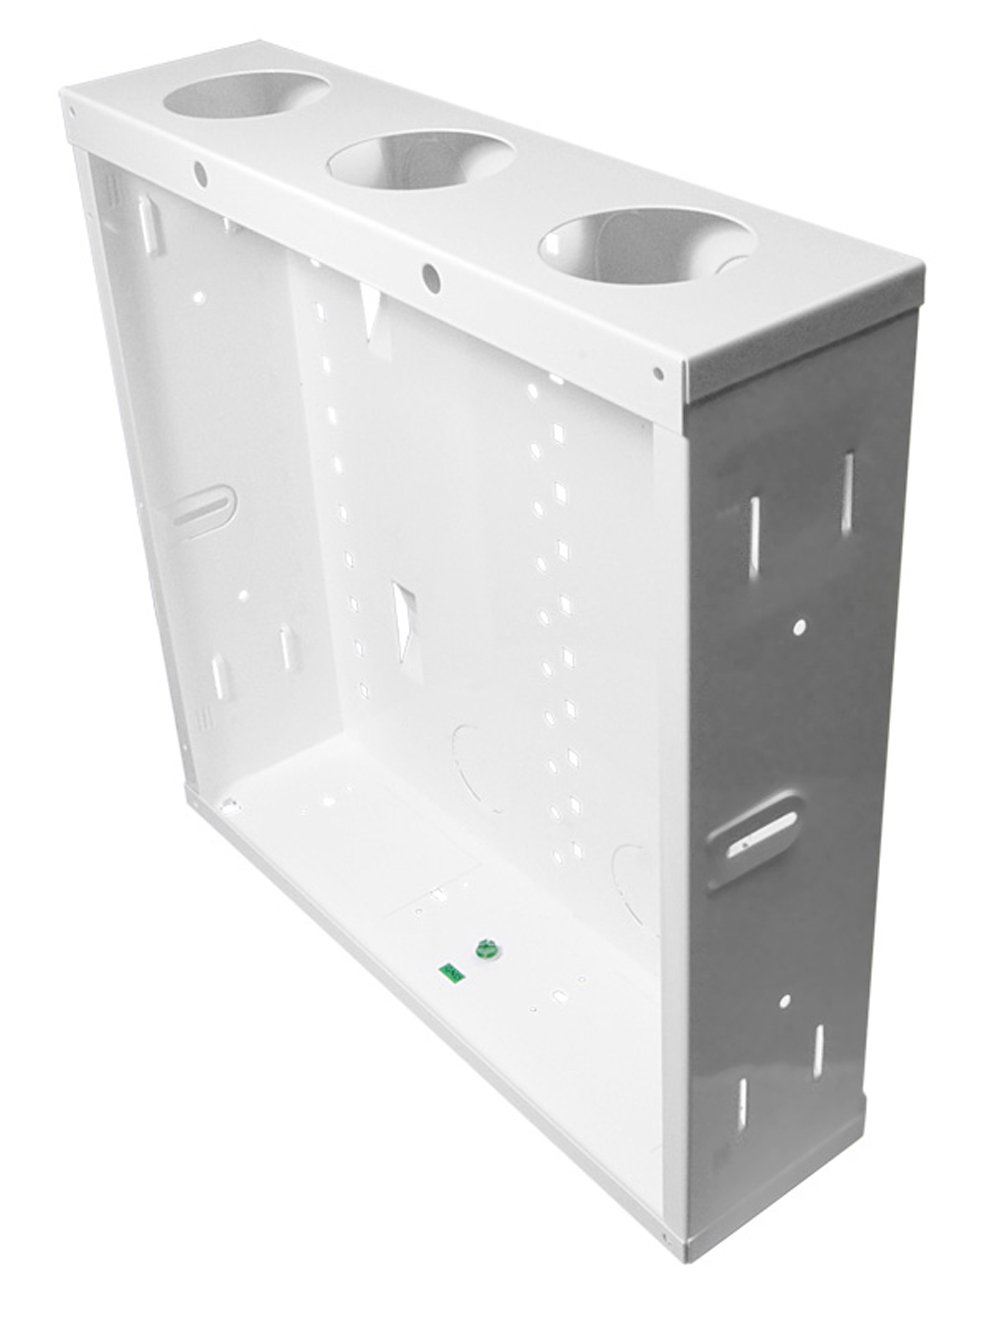 On Q En1400 14inch Enclosure With Screwon Cover Electrical Outlet Data Video Structured Wiring Boxes Amazoncom